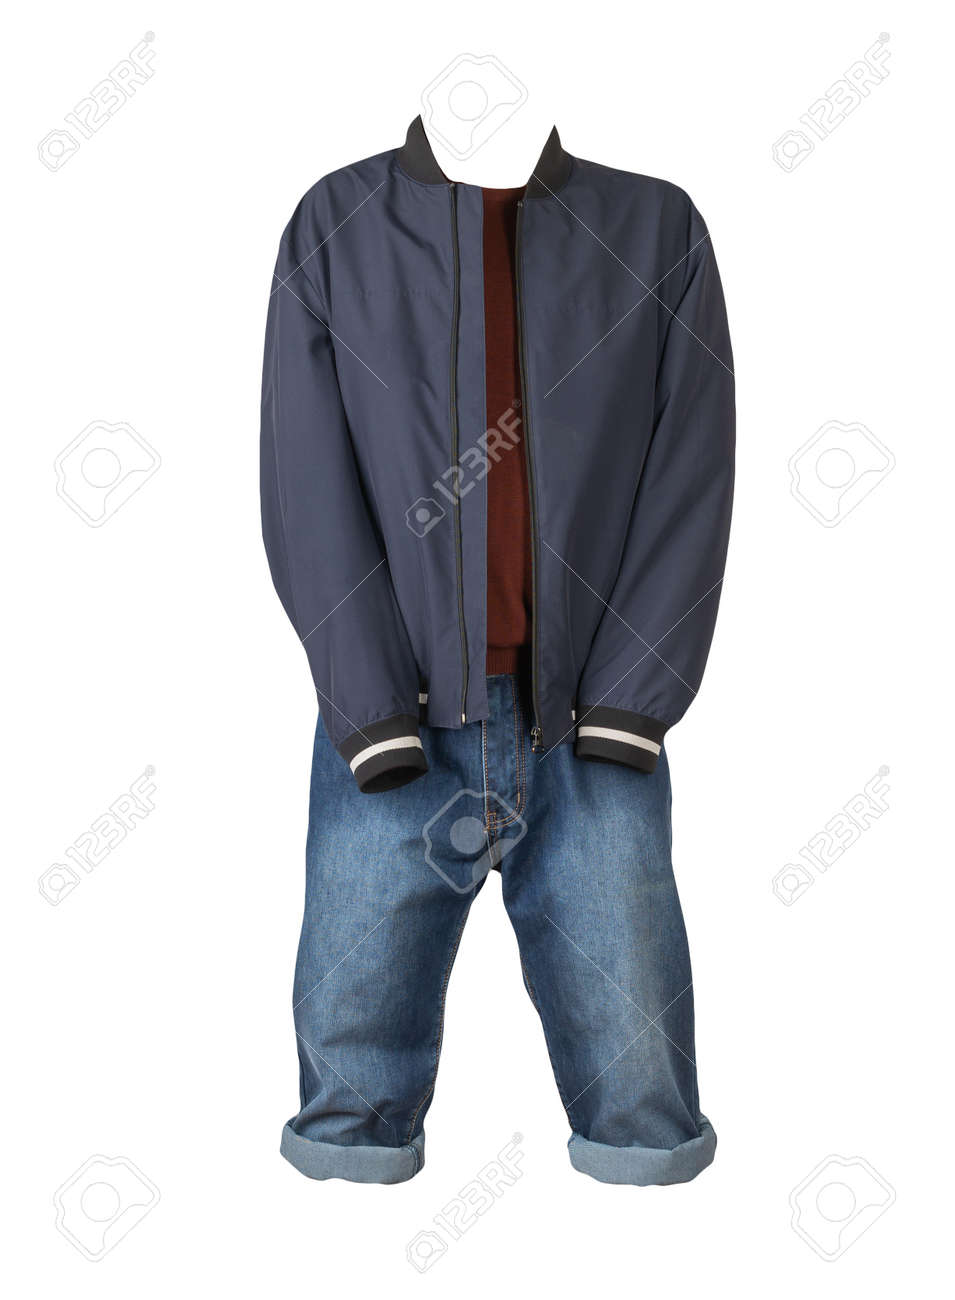 Denim blue shorts, dark red sweater and dark blue jacket on the zipper isolated on white background - 172078672